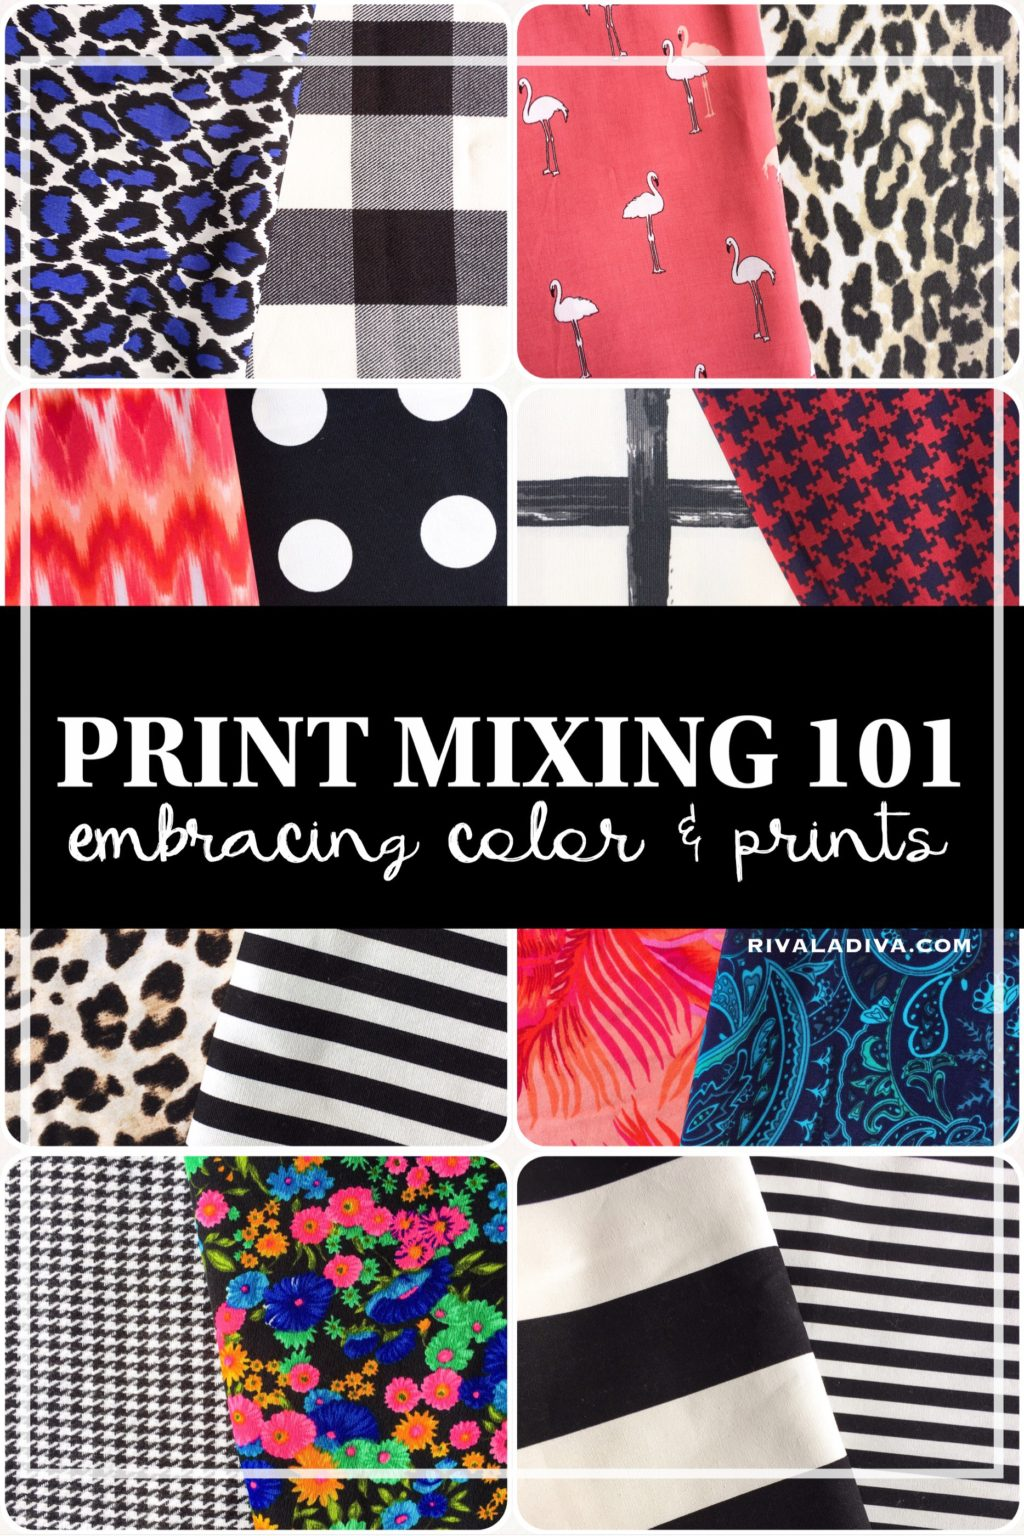 Print Mixing 101 – Embracing Color and Prints